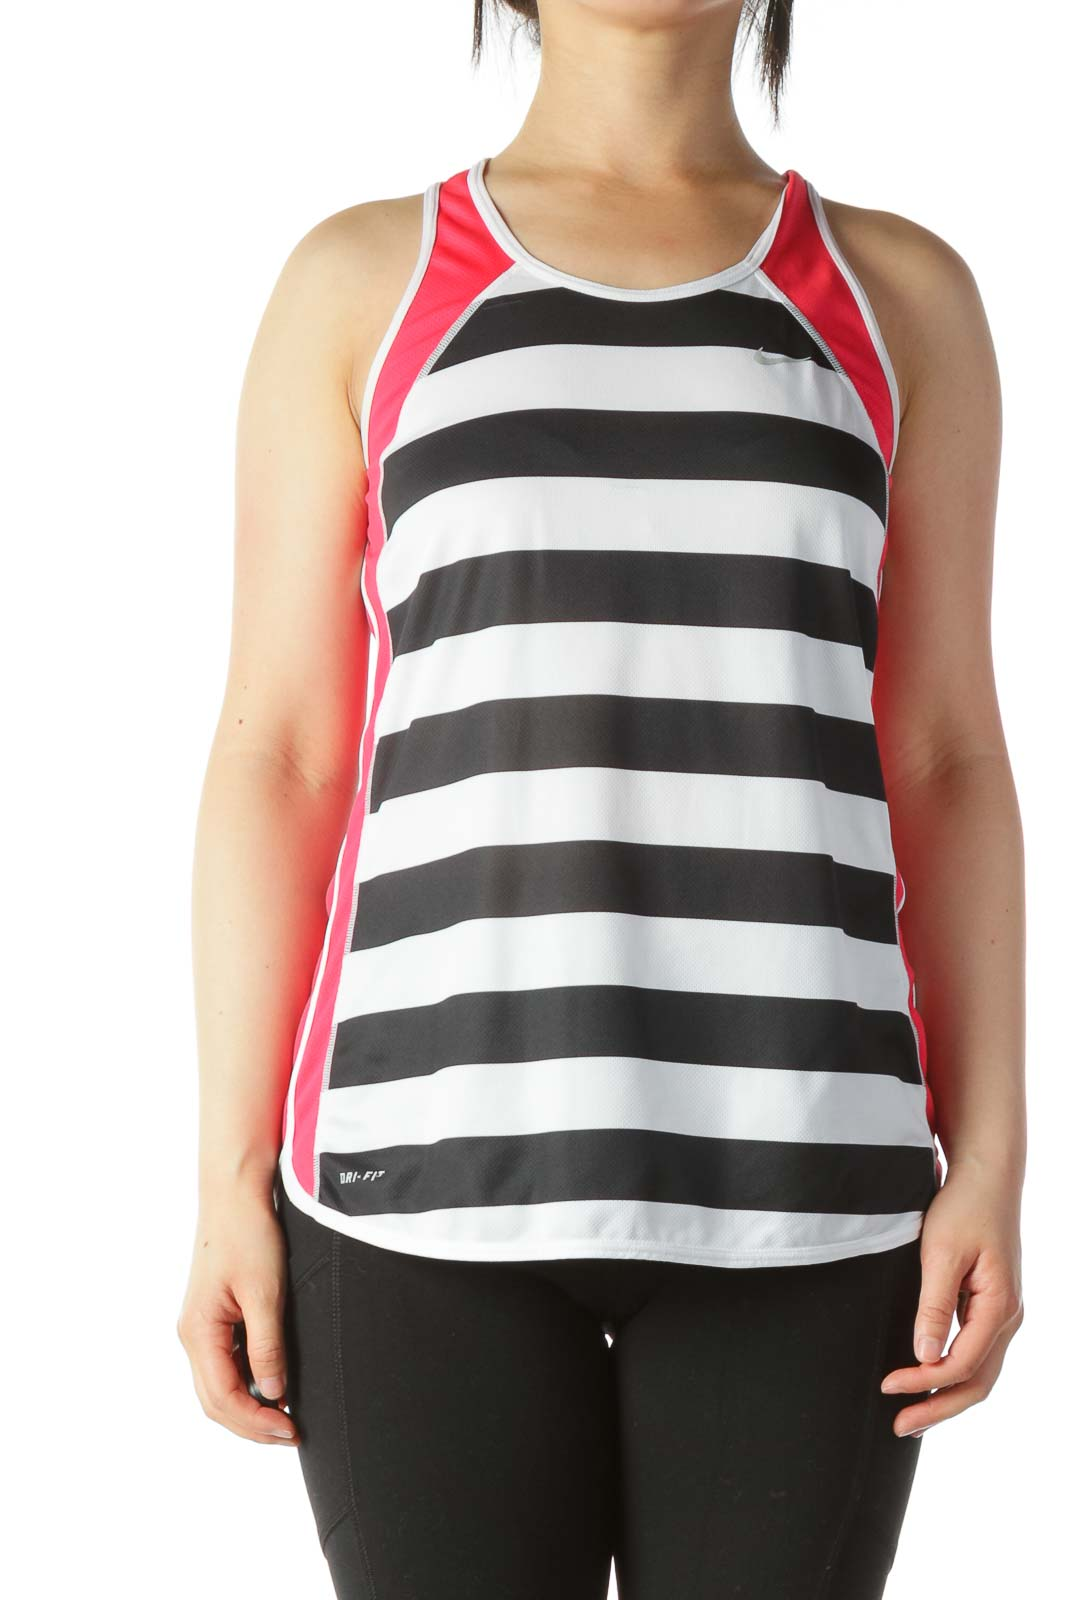 Black Red and White Striped Workout Tank